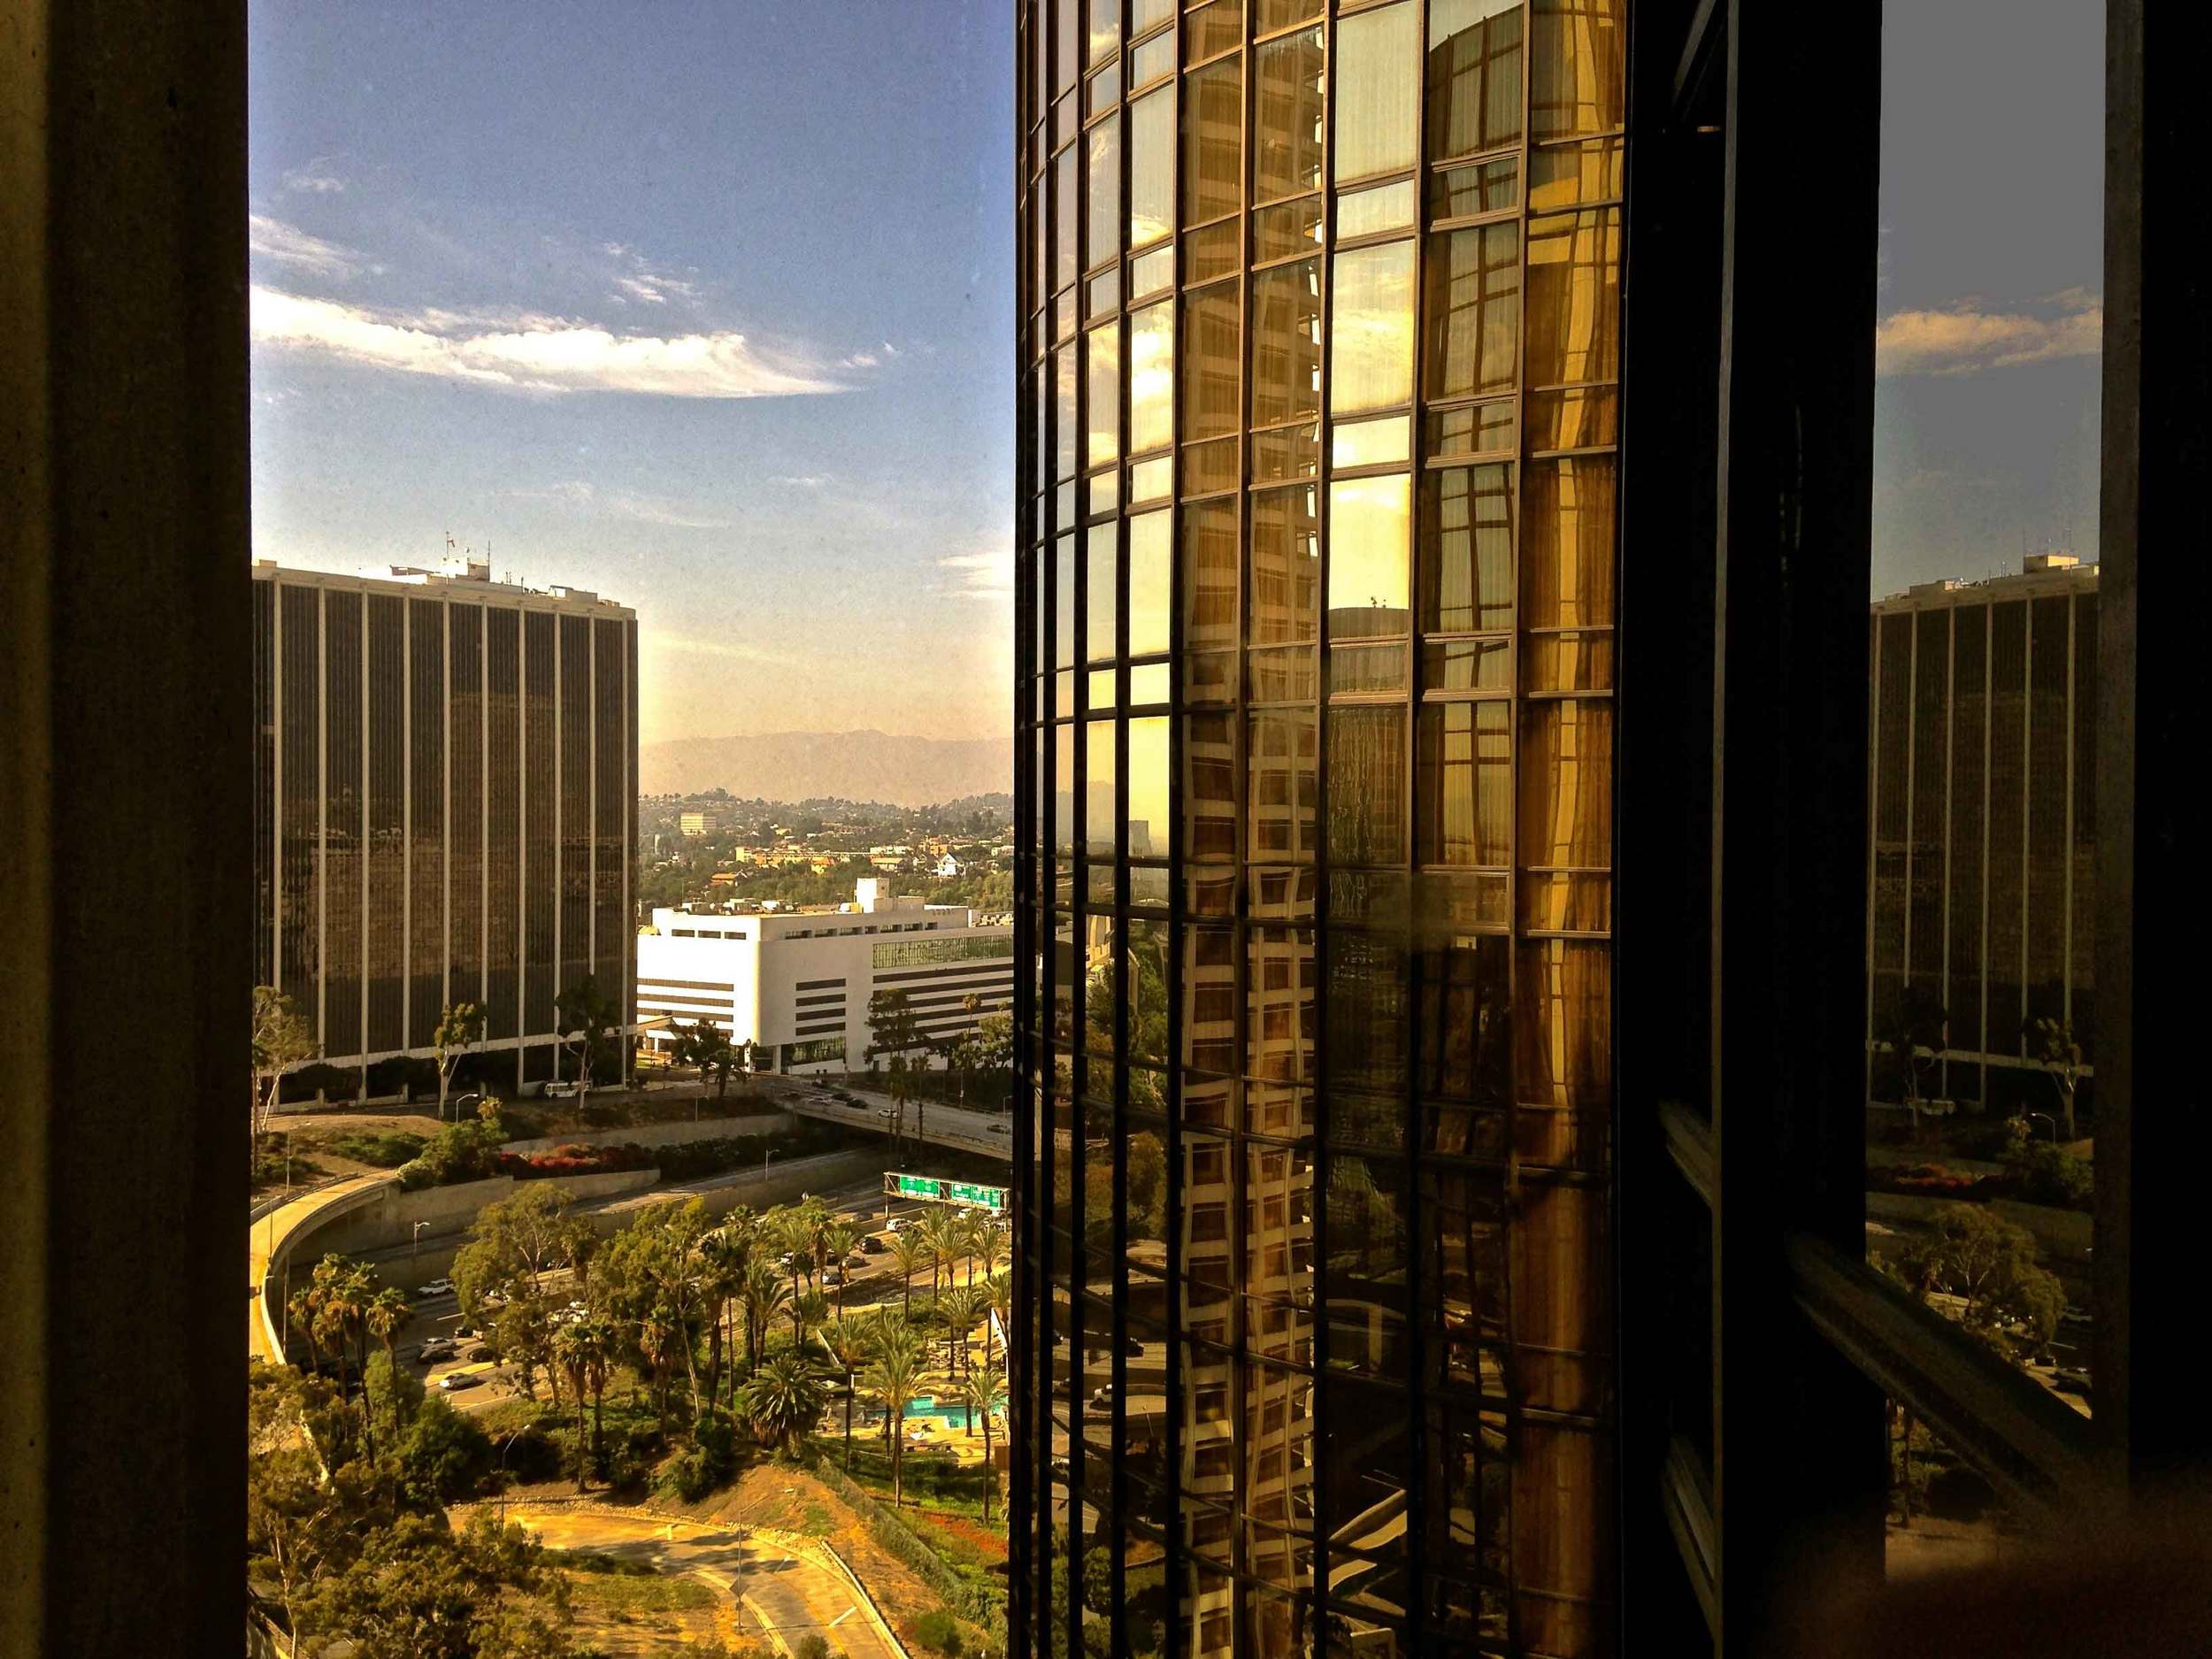 View from near the elevator, Westin Bonaventure, L.A. Image©sourcingstyle.com